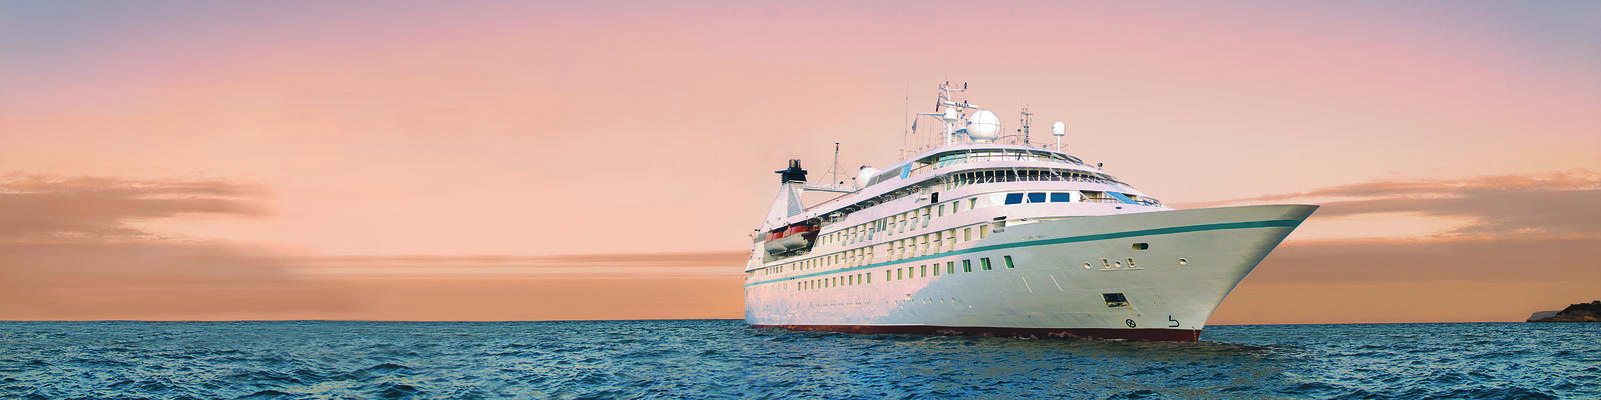 Top Common Cruise Questions Cruise Critic - Where to stay on a cruise ship to avoid seasickness